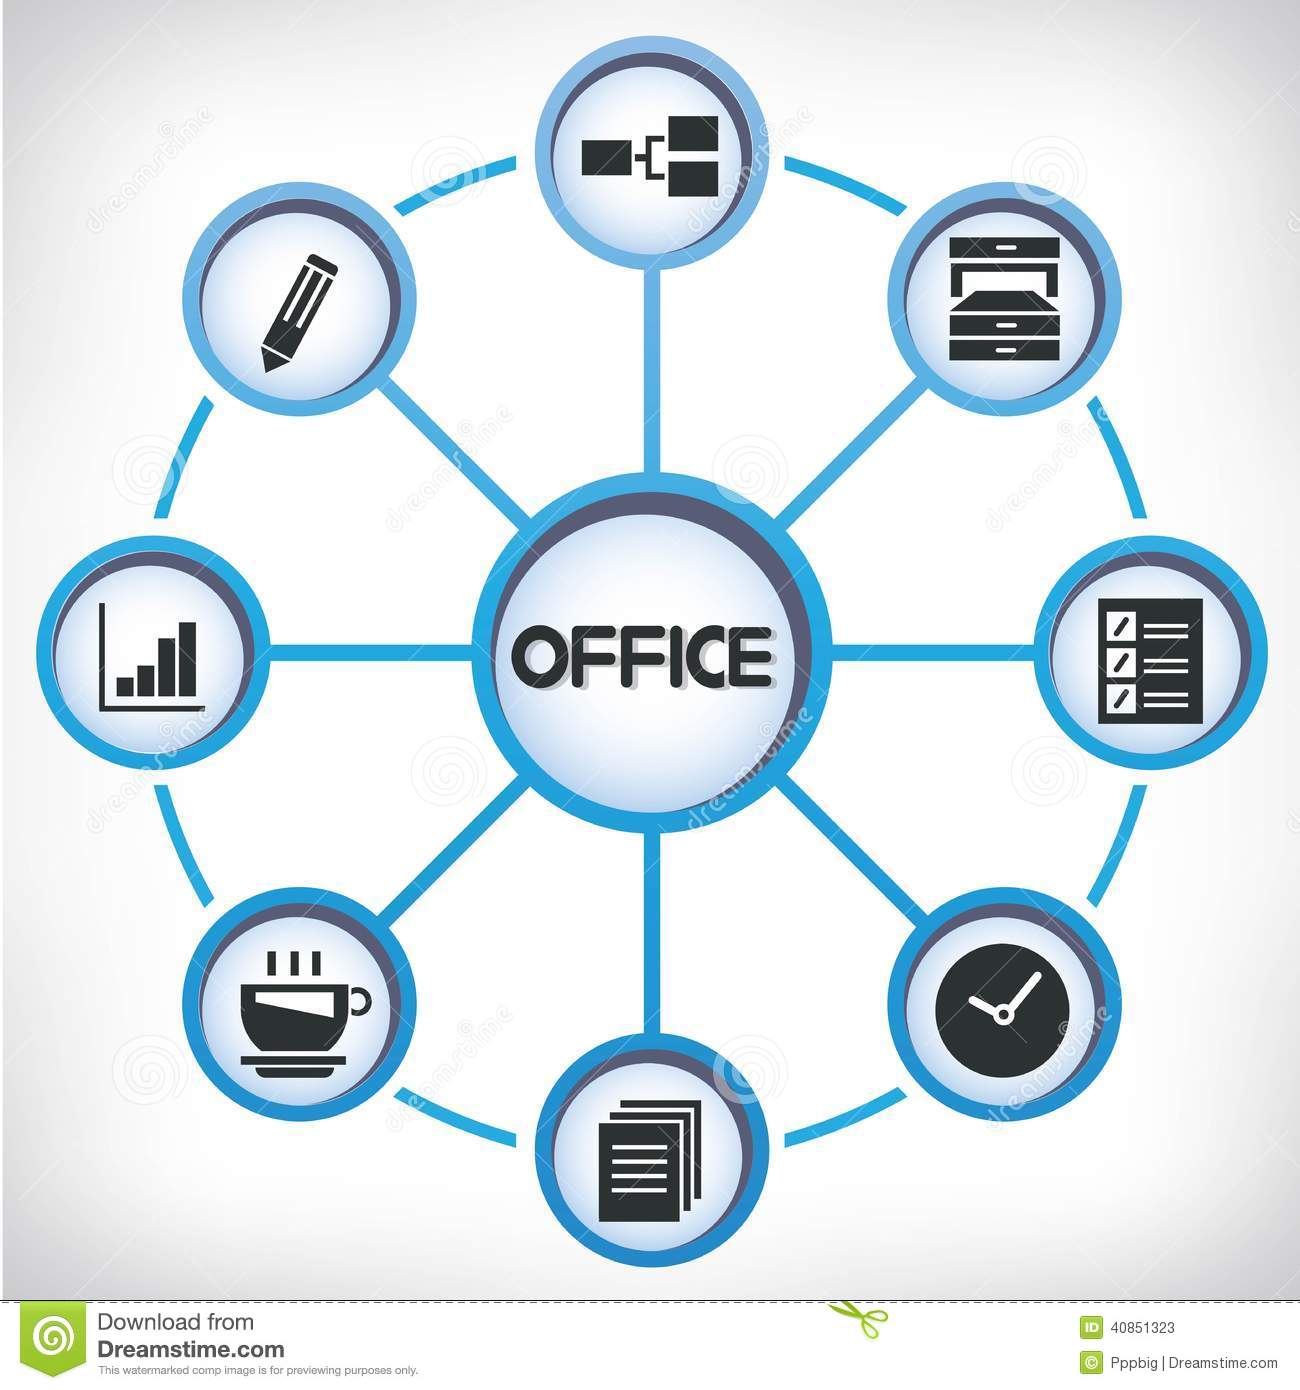 office network diagram stock illustration  illustration of icons